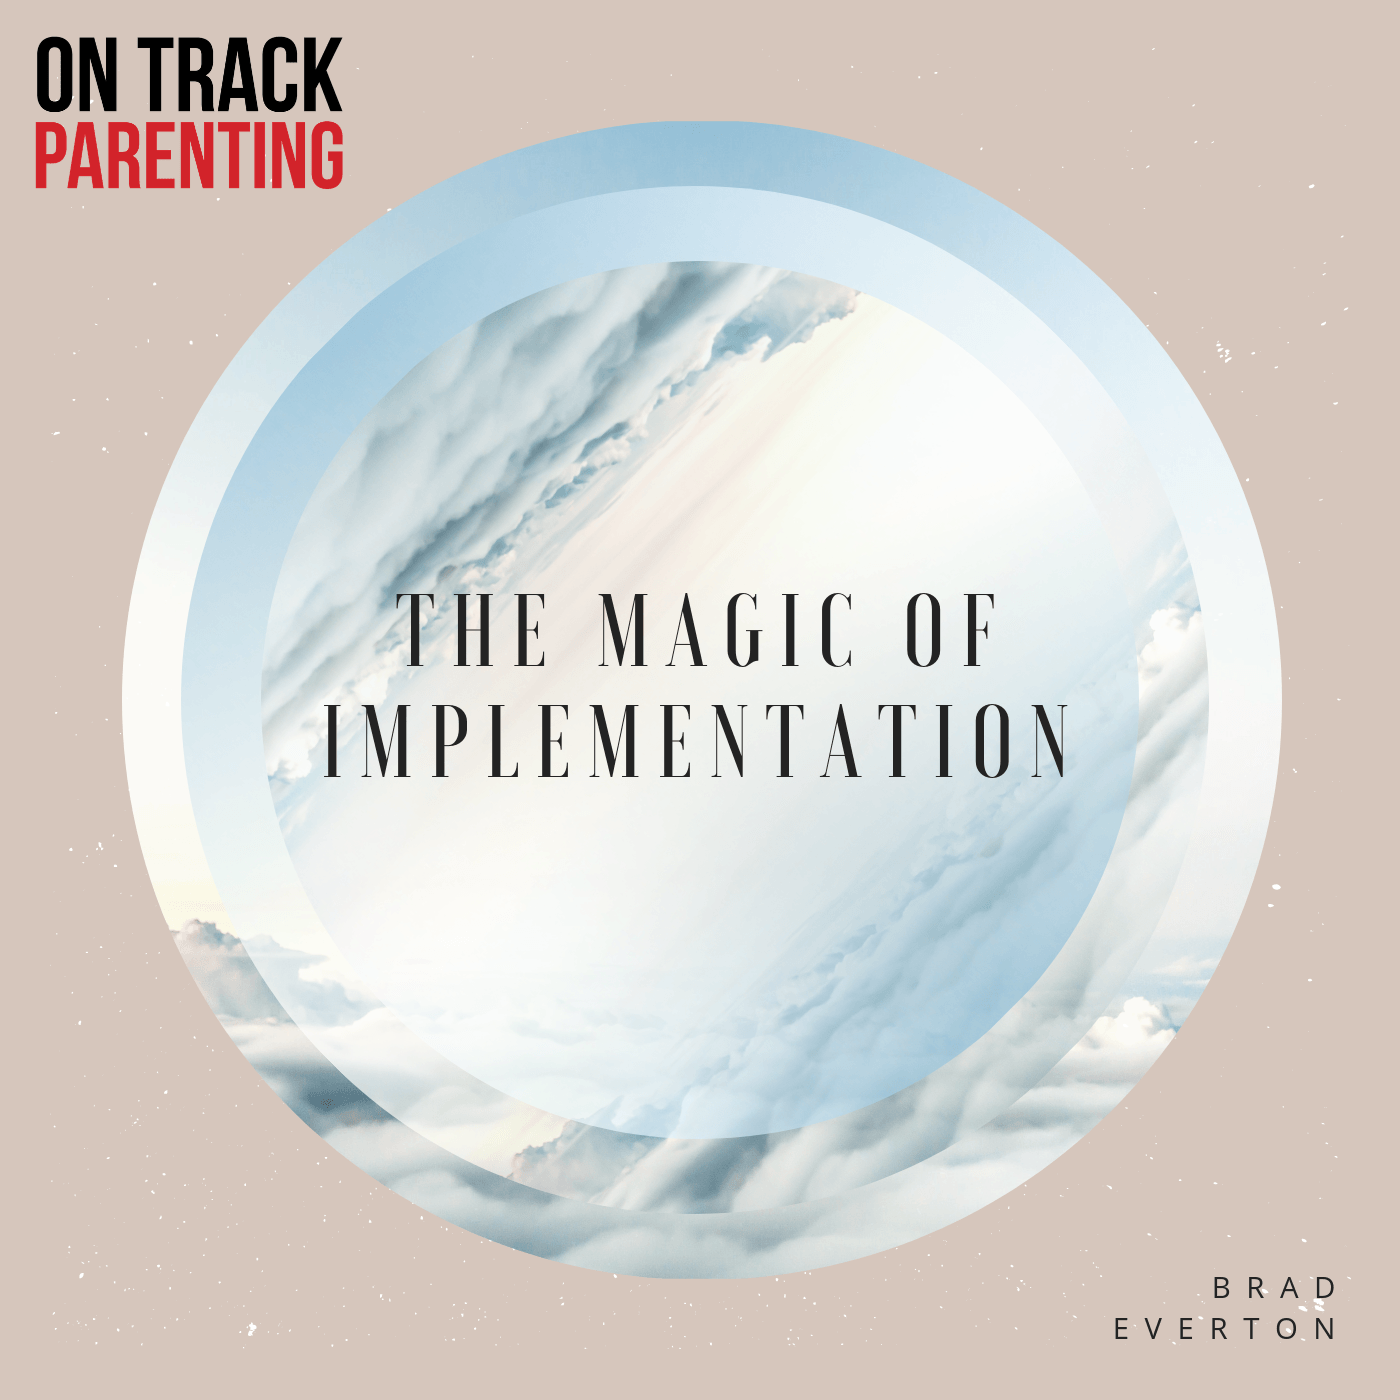 The Magic of Implementation